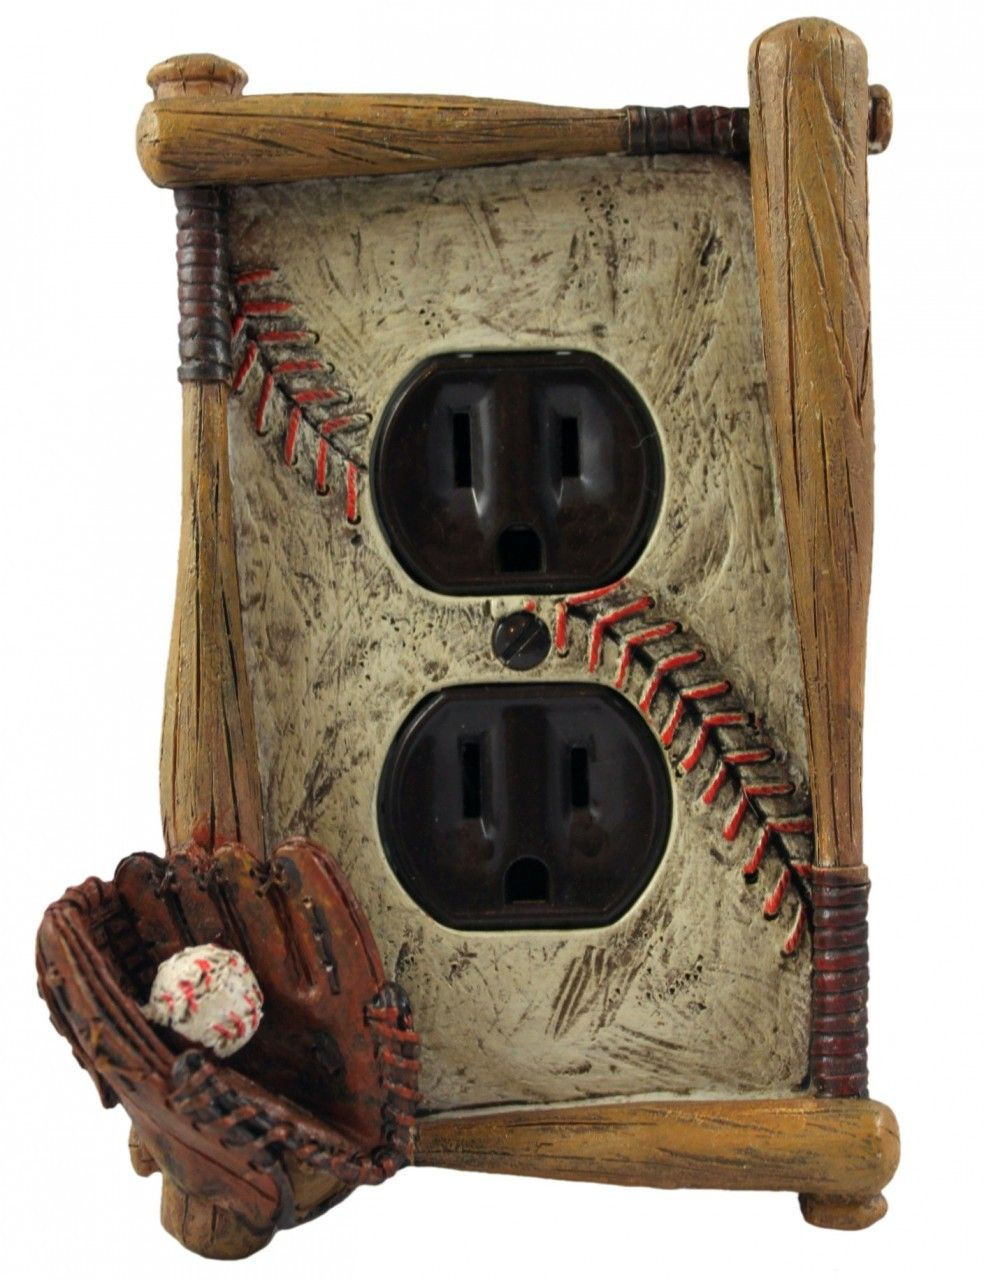 Kids Bedroom Outlet the textured element - baseball themed single outlet electrical